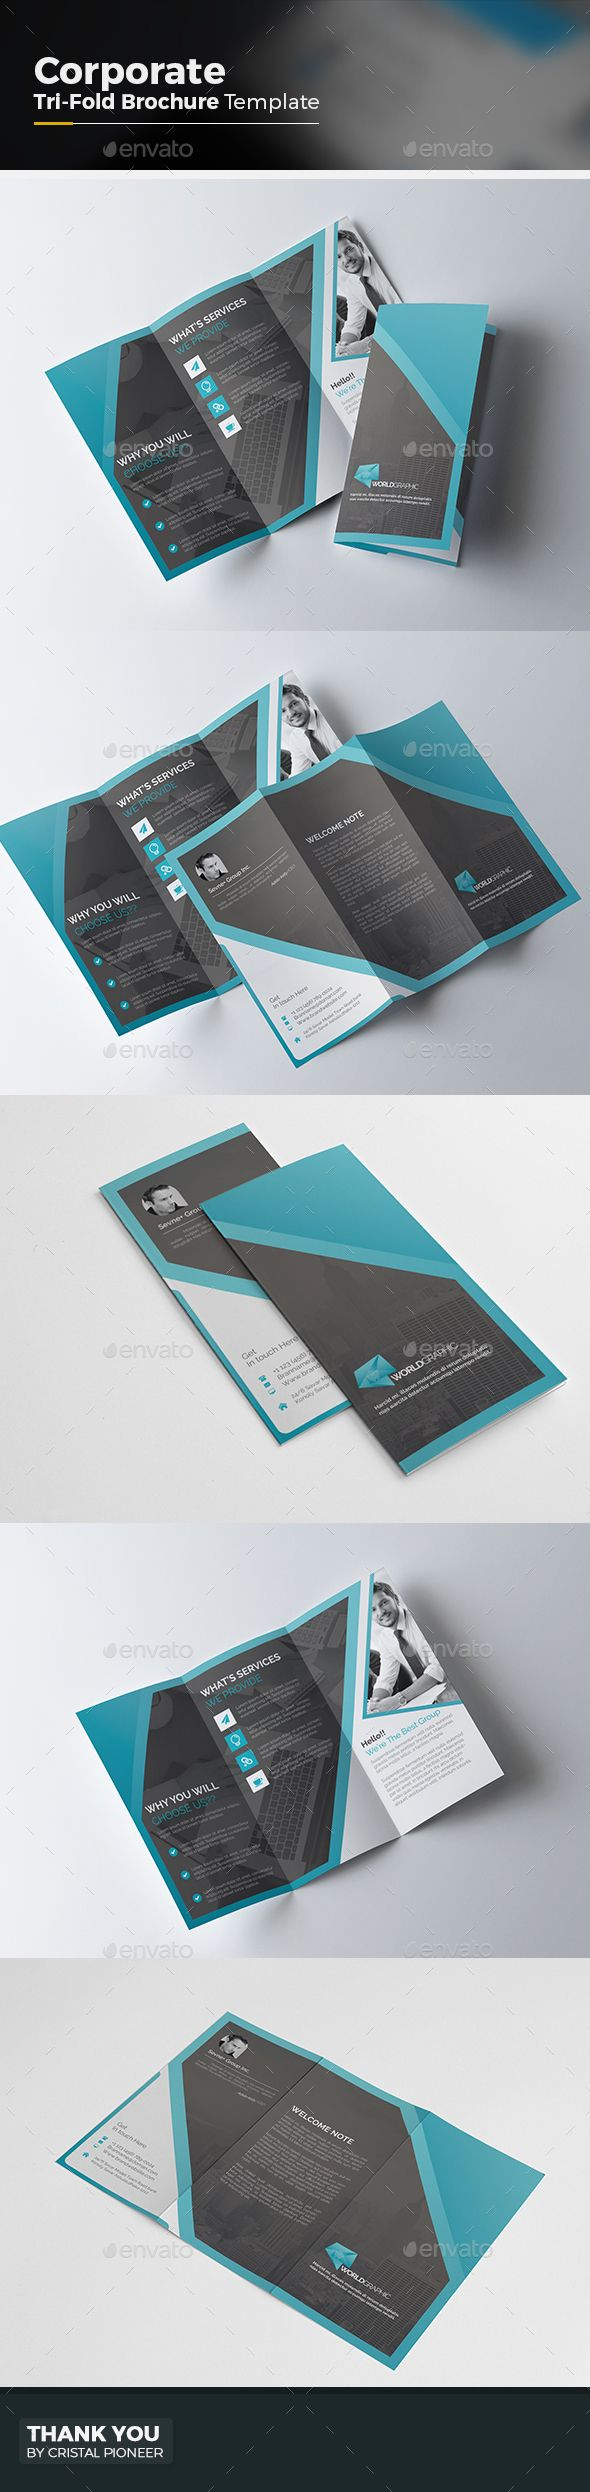 Tri fold Brochure Template Vector EPS, AI. Download here: http://graphicriver.net/item/tri-fold-brochure/15158671?ref=ksioks